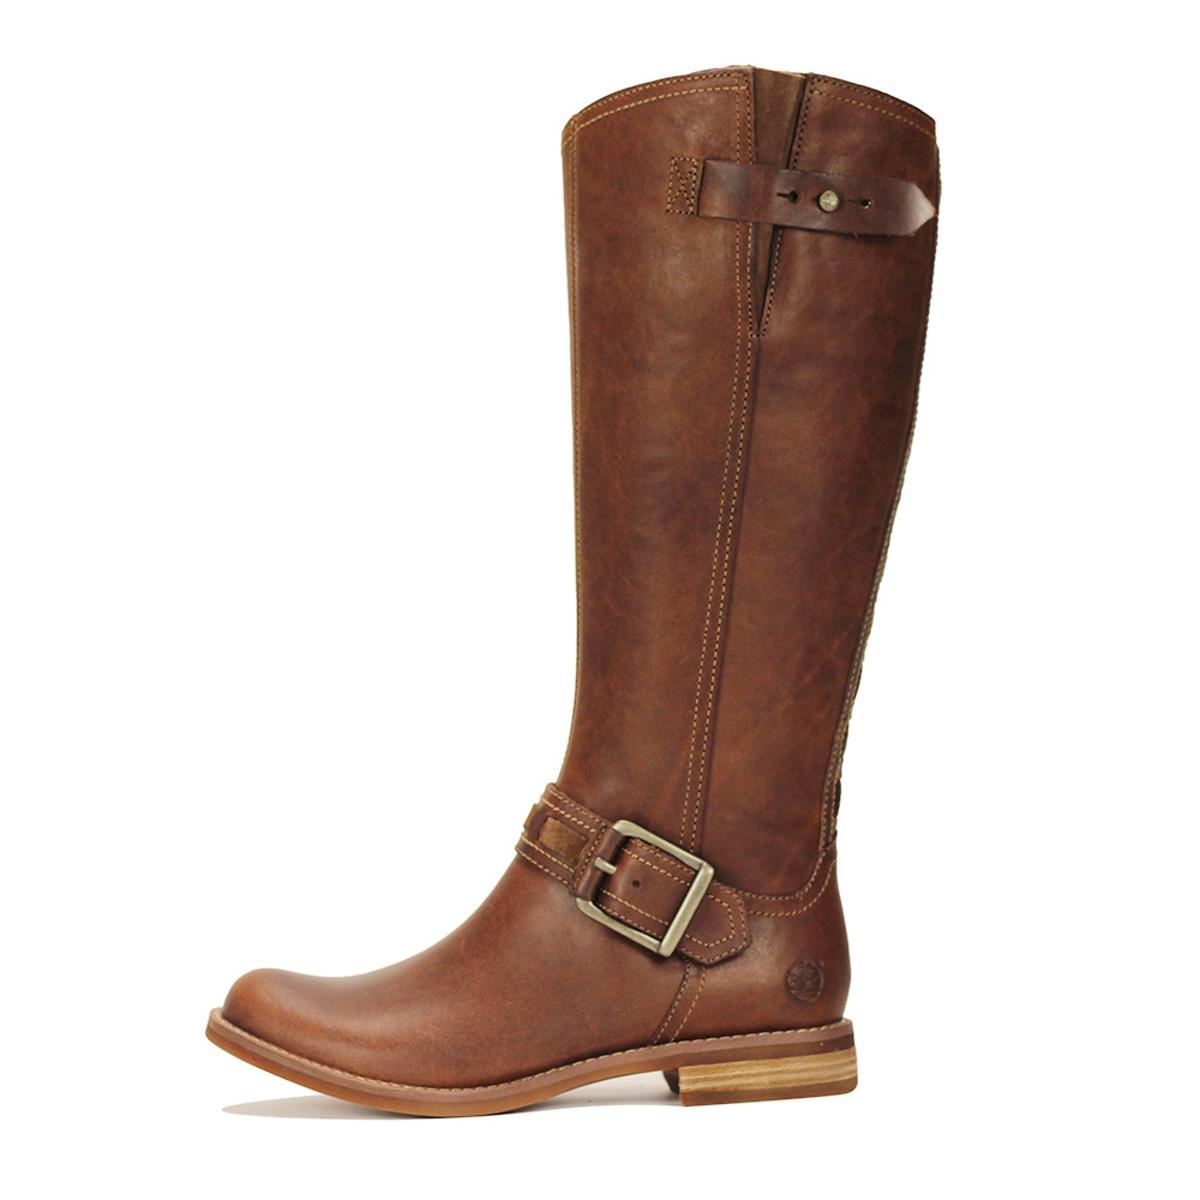 Looks - Tall Timberland boots for women video